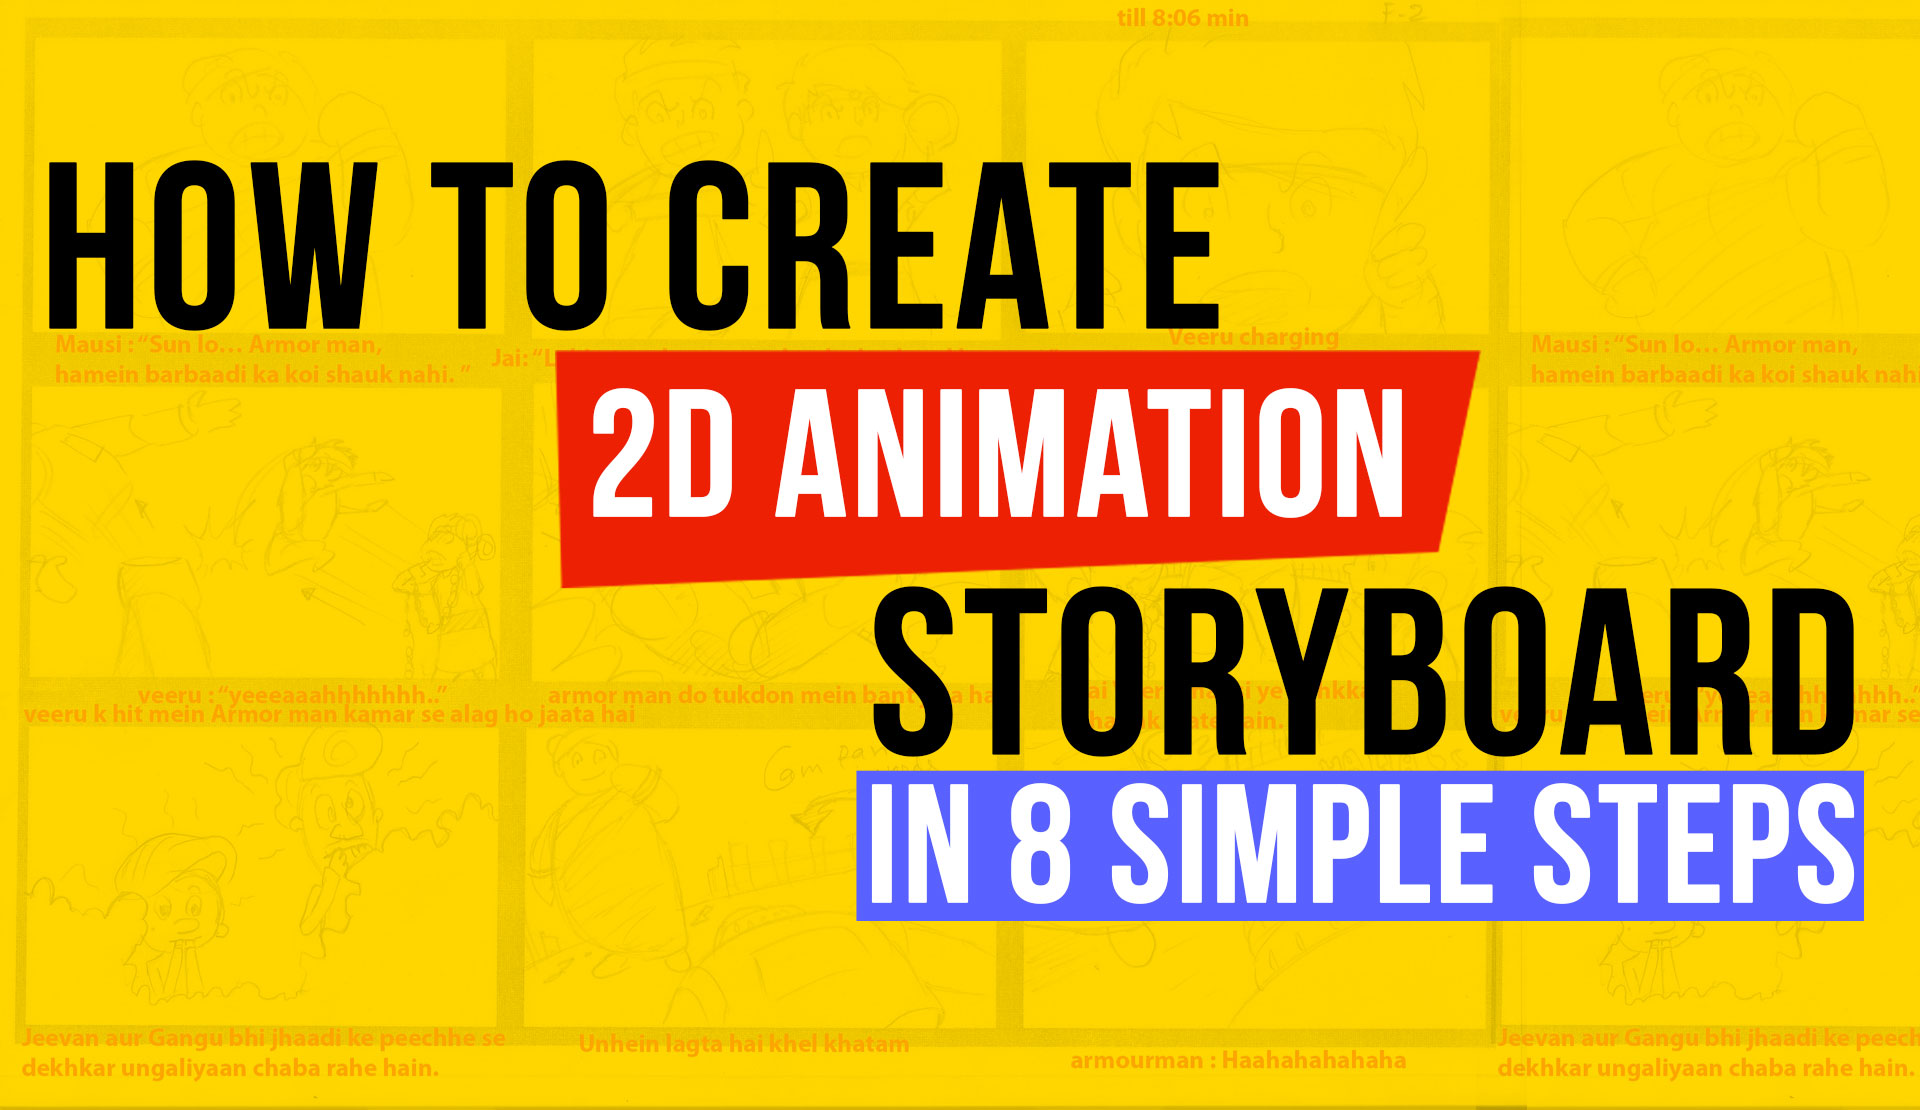 How to create 2D animation storyboard in 8 Simple steps?